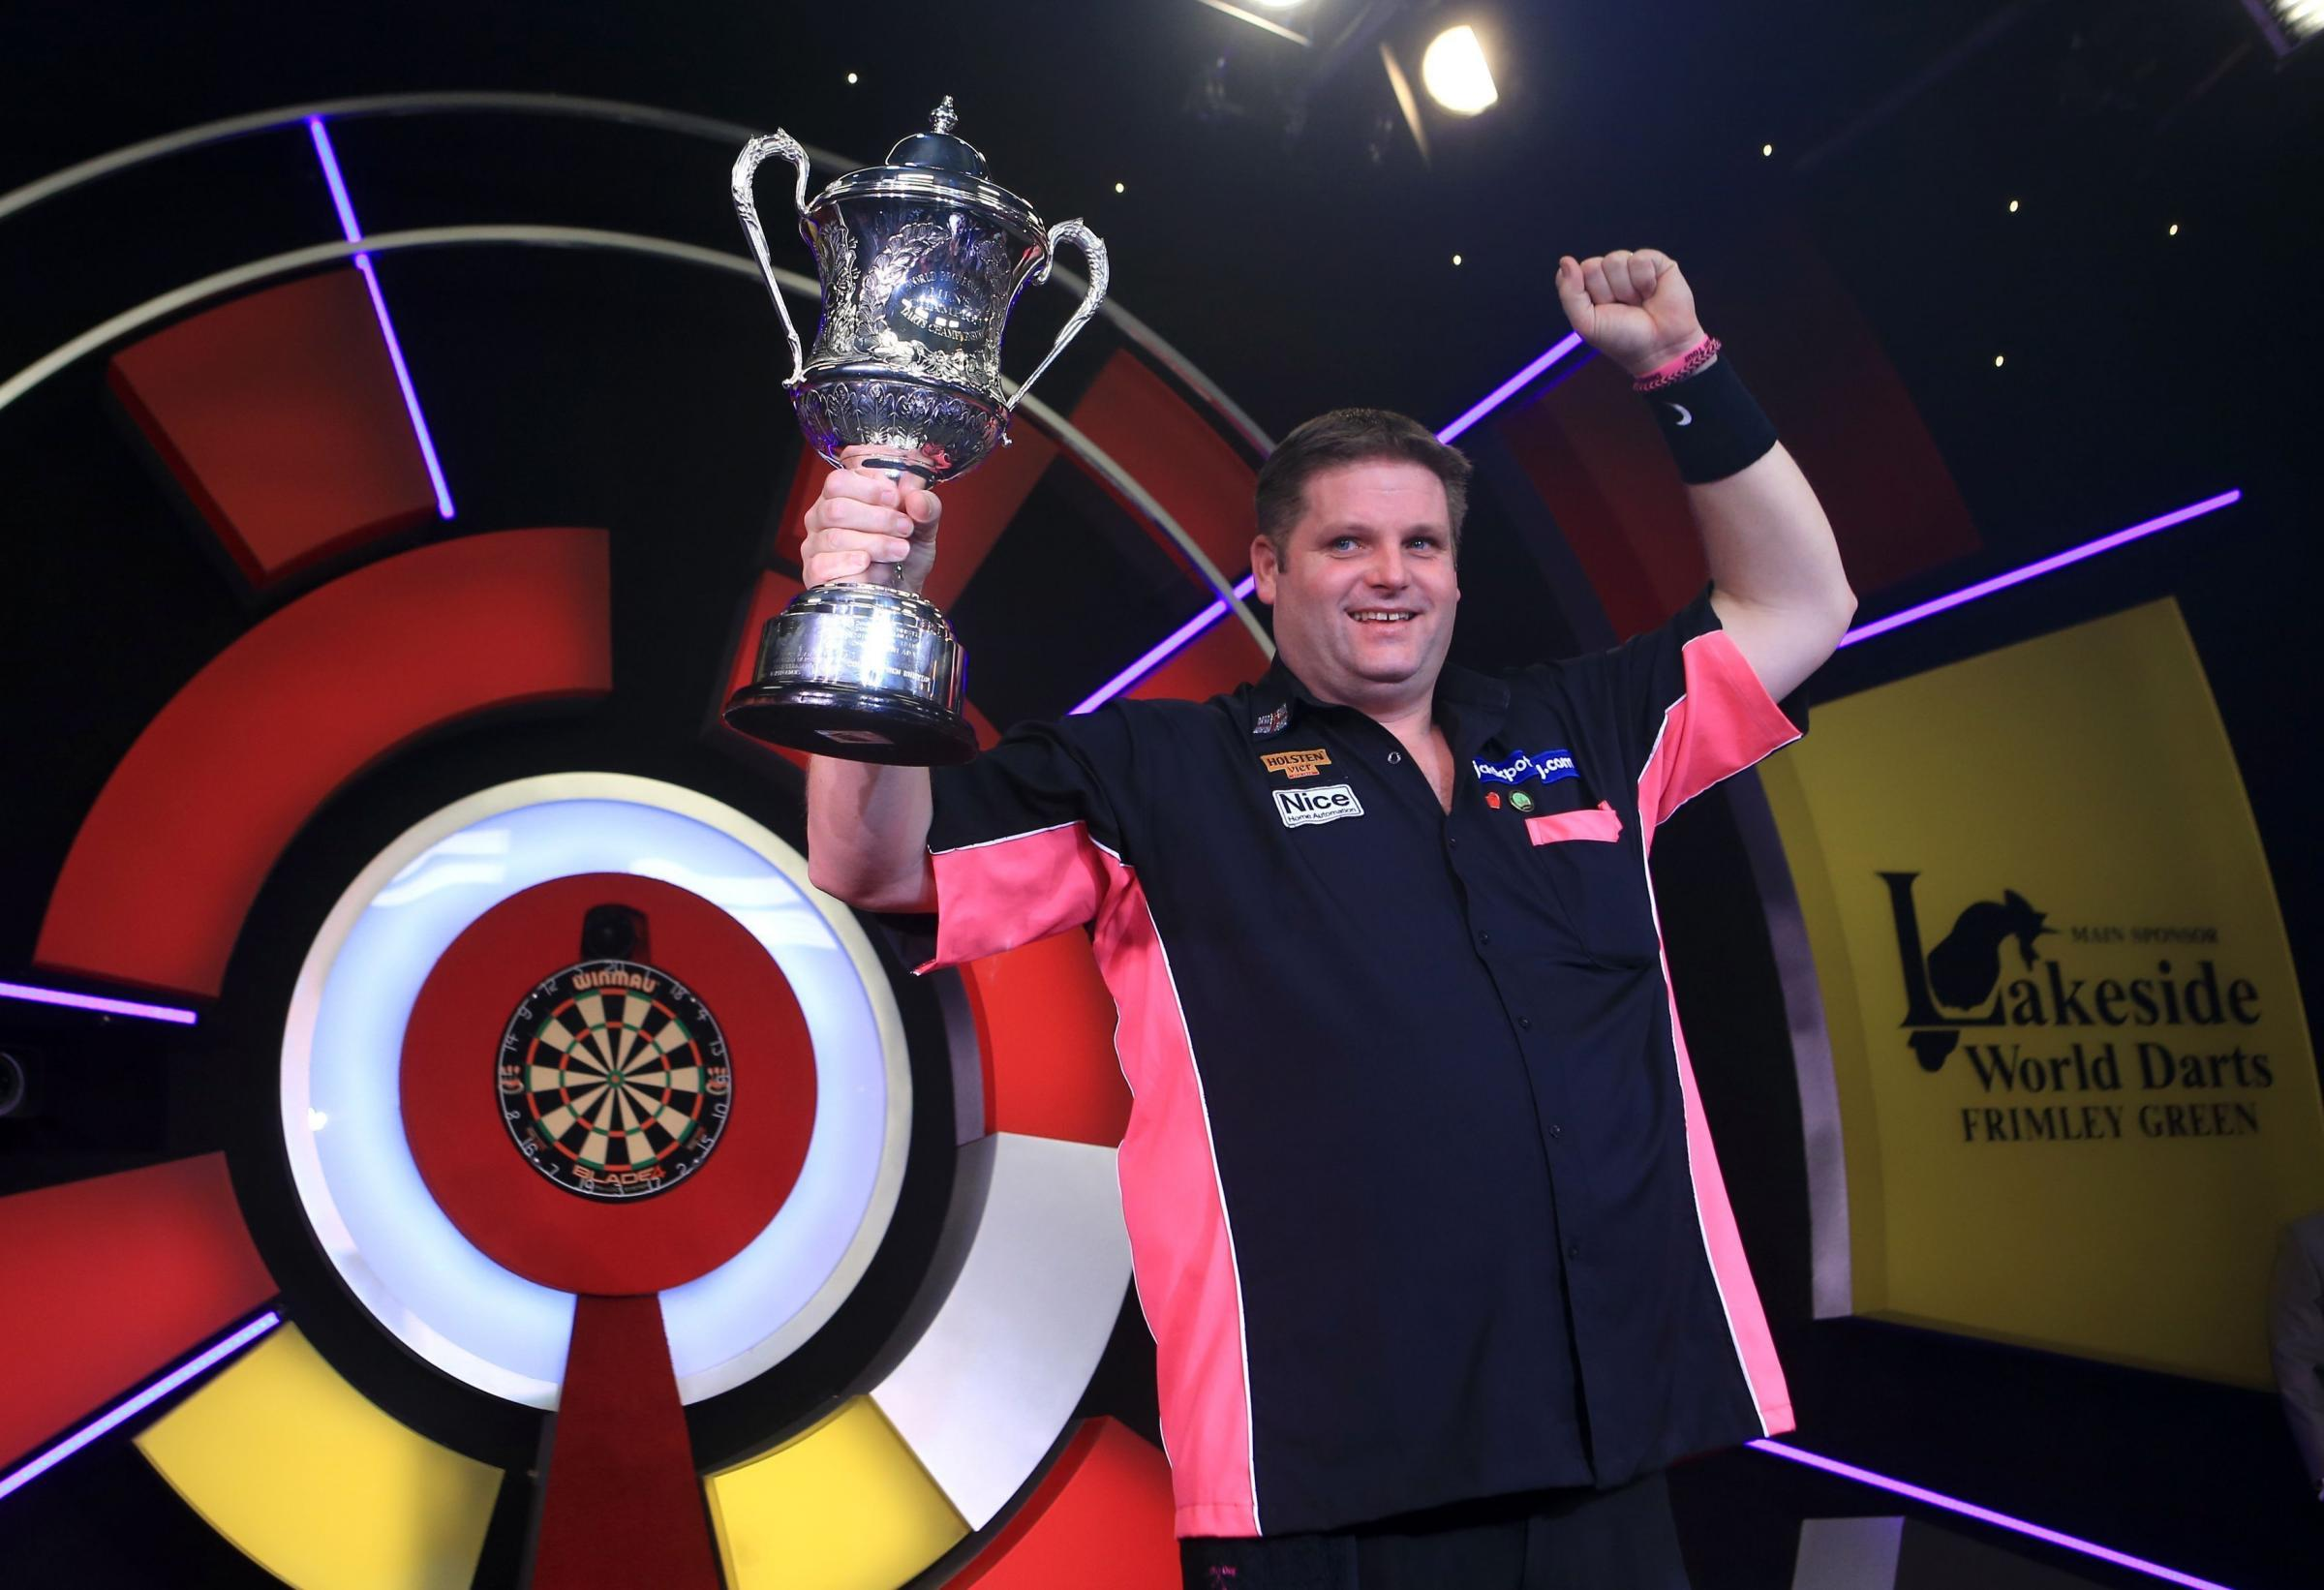 Scott Mitchell wins the BDO Lakeside World Professional Darts - pictures